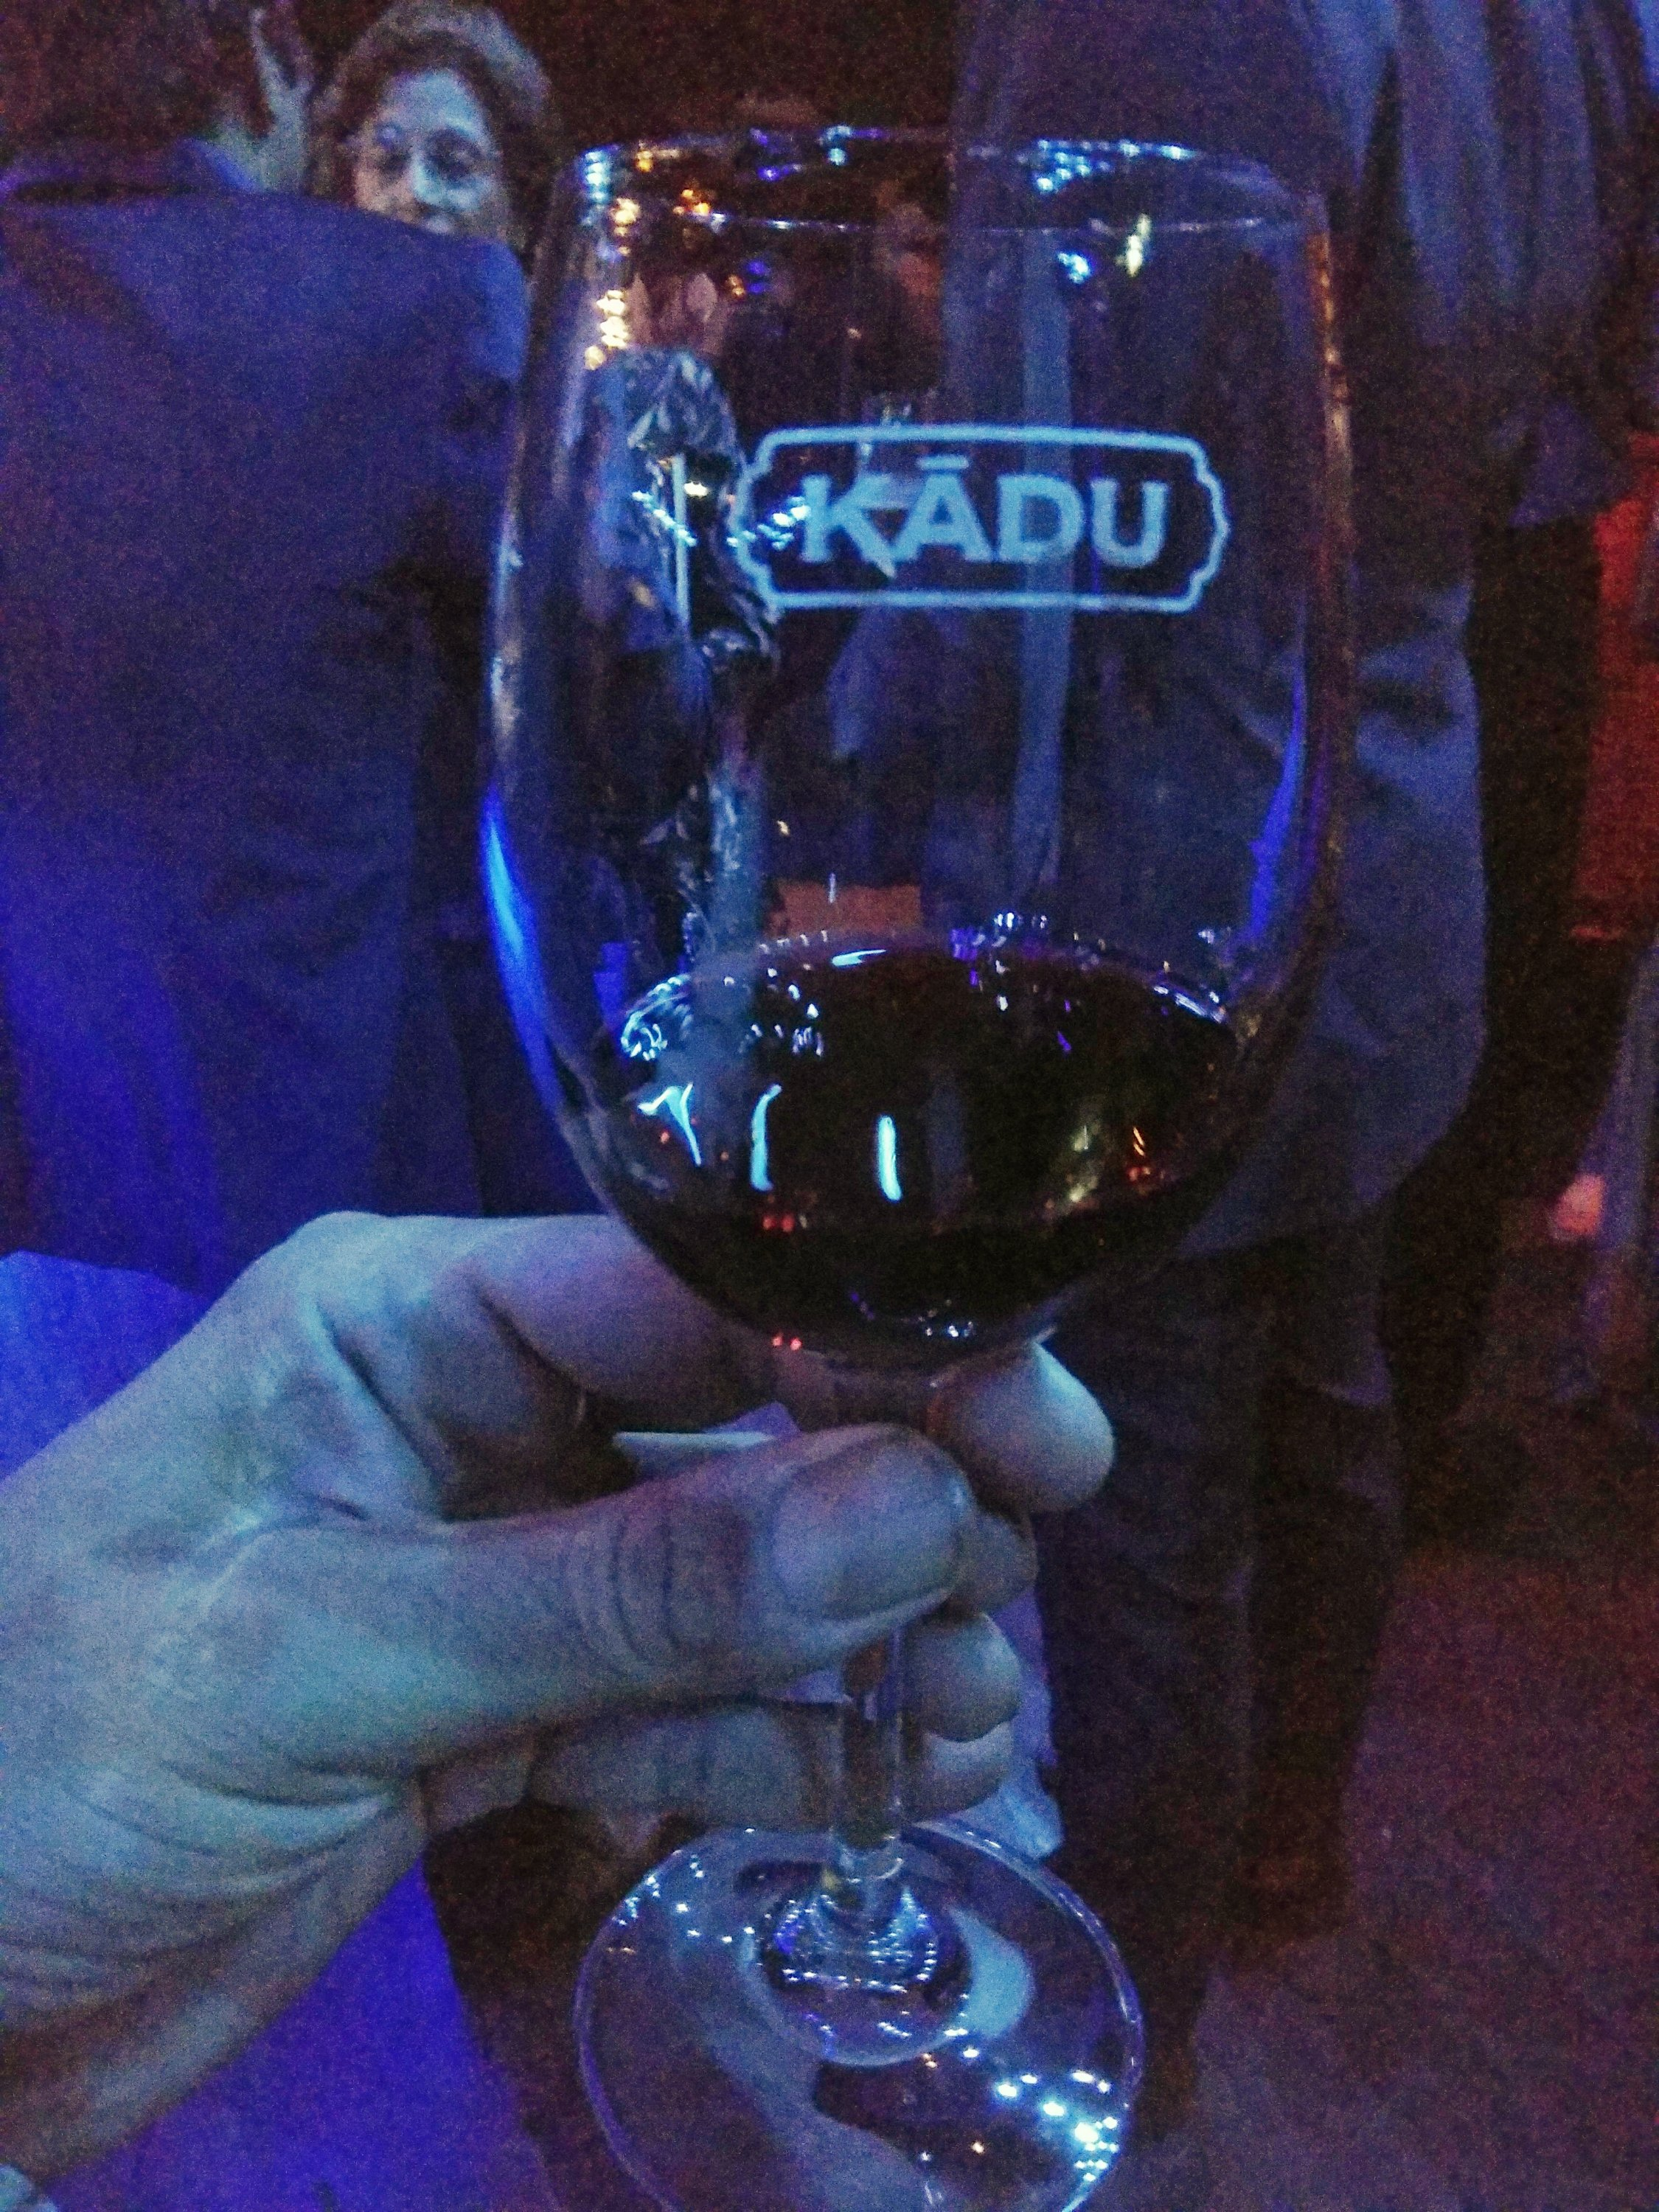 Wine for a Cause – Kadu by Sula Vineyards